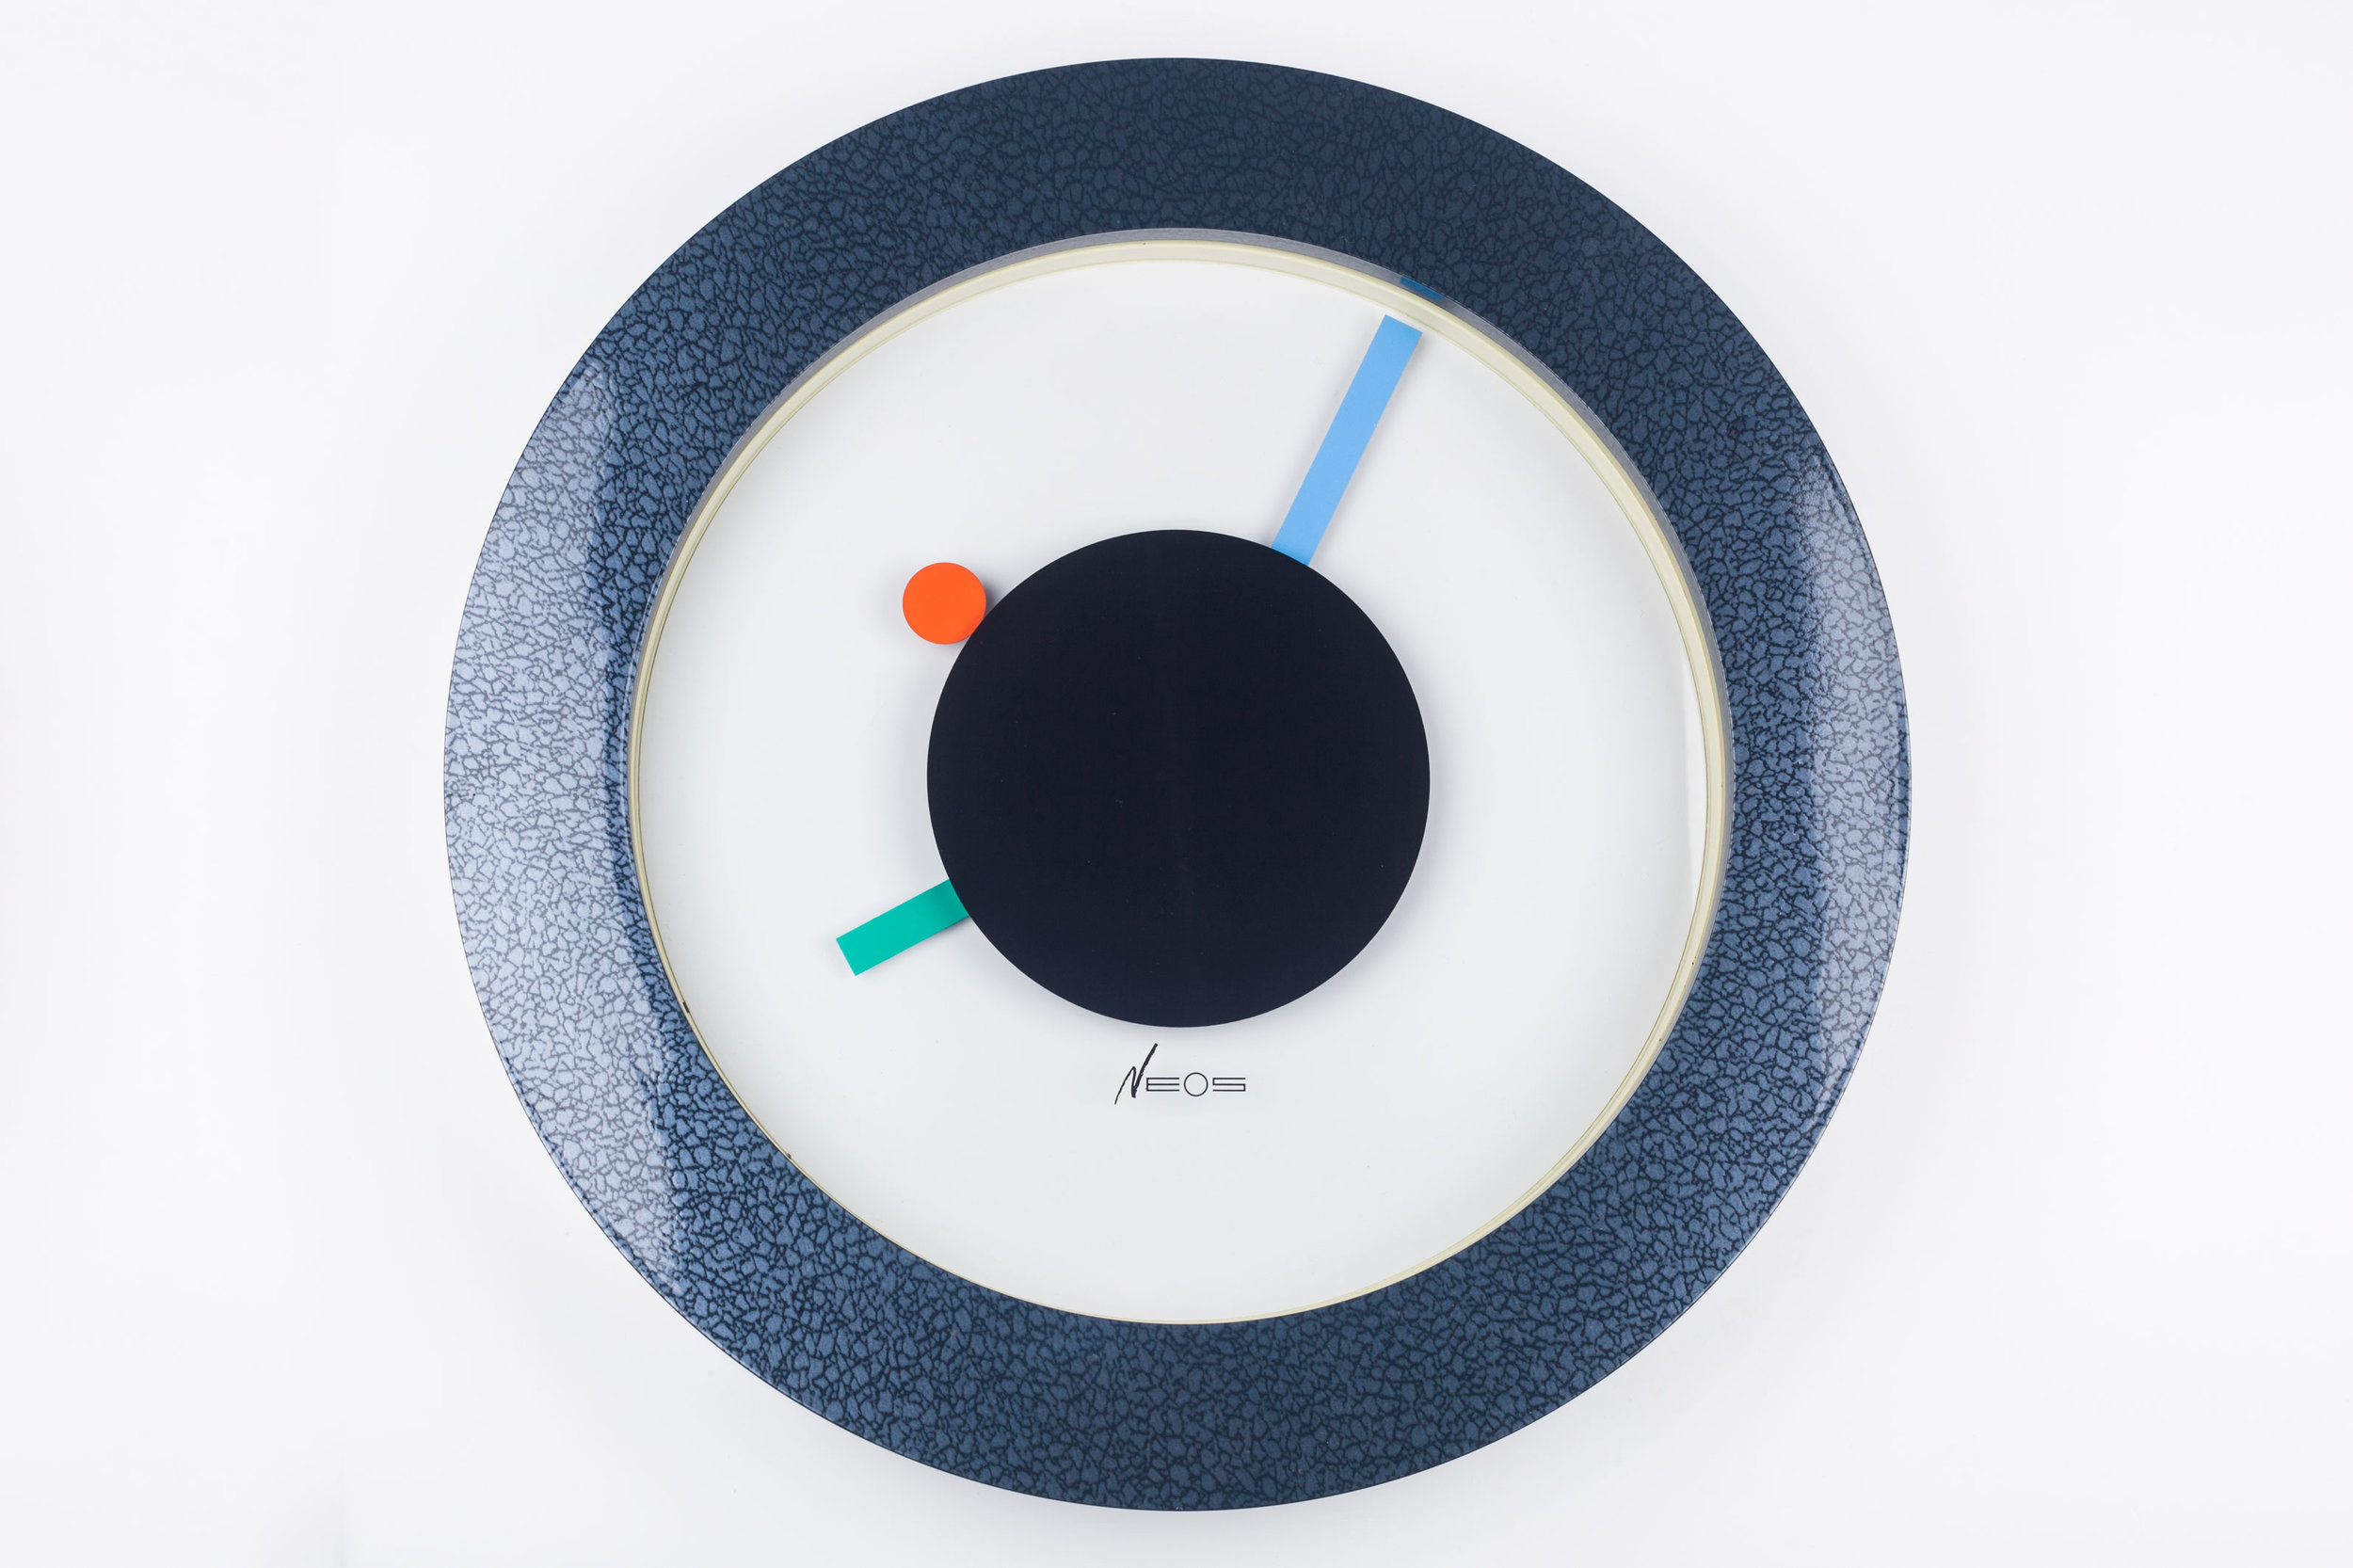 MEMPHIS WALL CLOCK, BLUE, GREEN, RED, DU PASQUIER & SOWDEN X NEOS, ITALY, 1980S